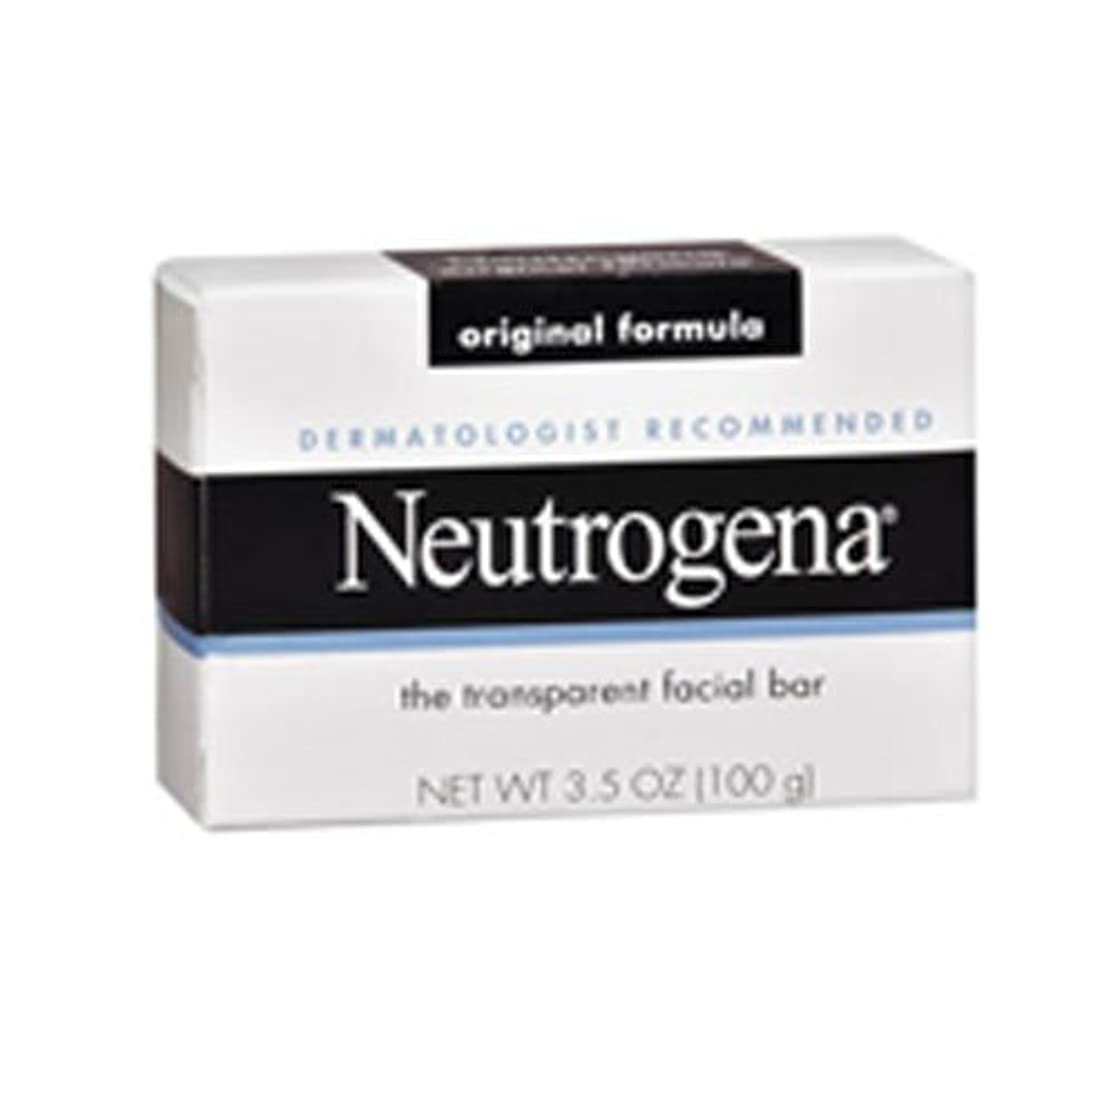 世代衛星親愛な海外直送肘 Neutrogena Transparent Facial Soap Bar, 3.5 oz